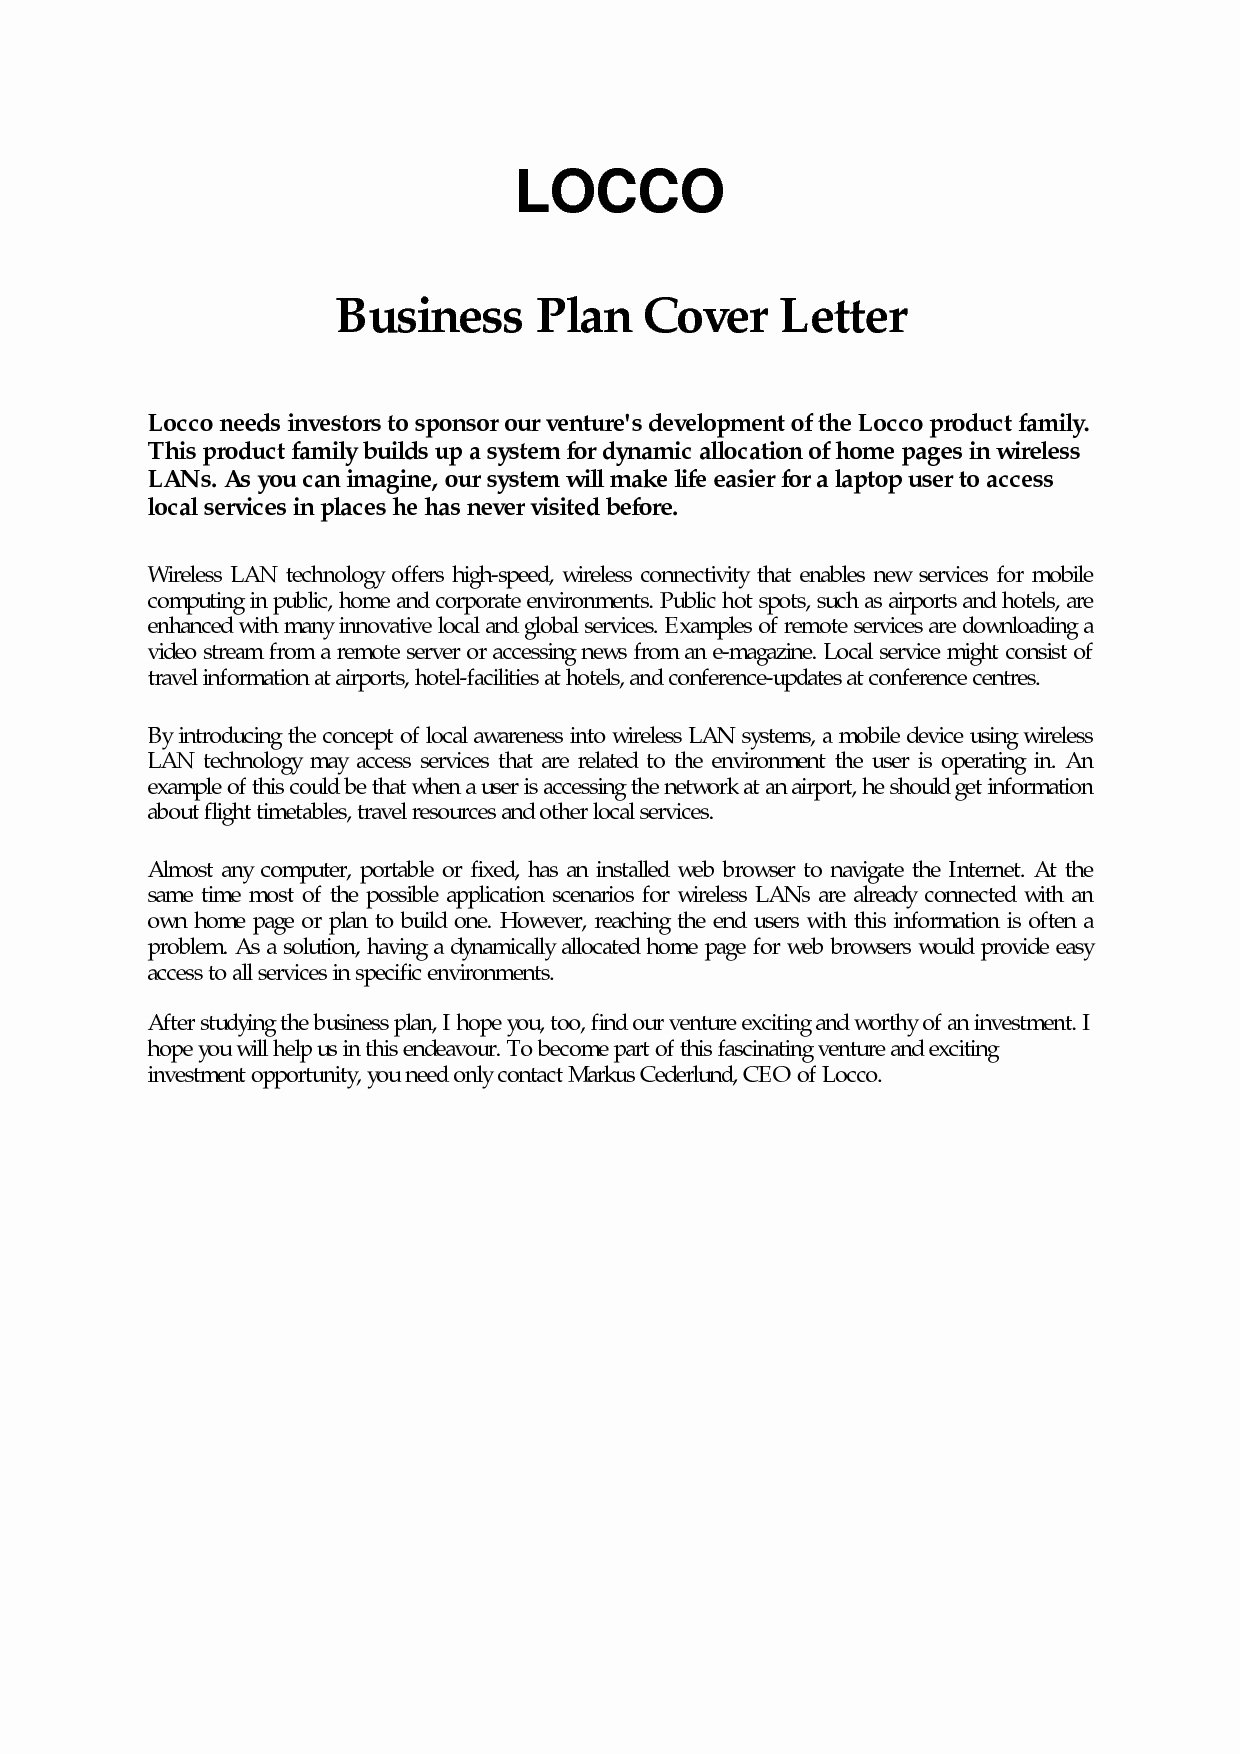 Sample Cover Letter for Grant Proposal Luxury event Bid Proposal Cover Letter